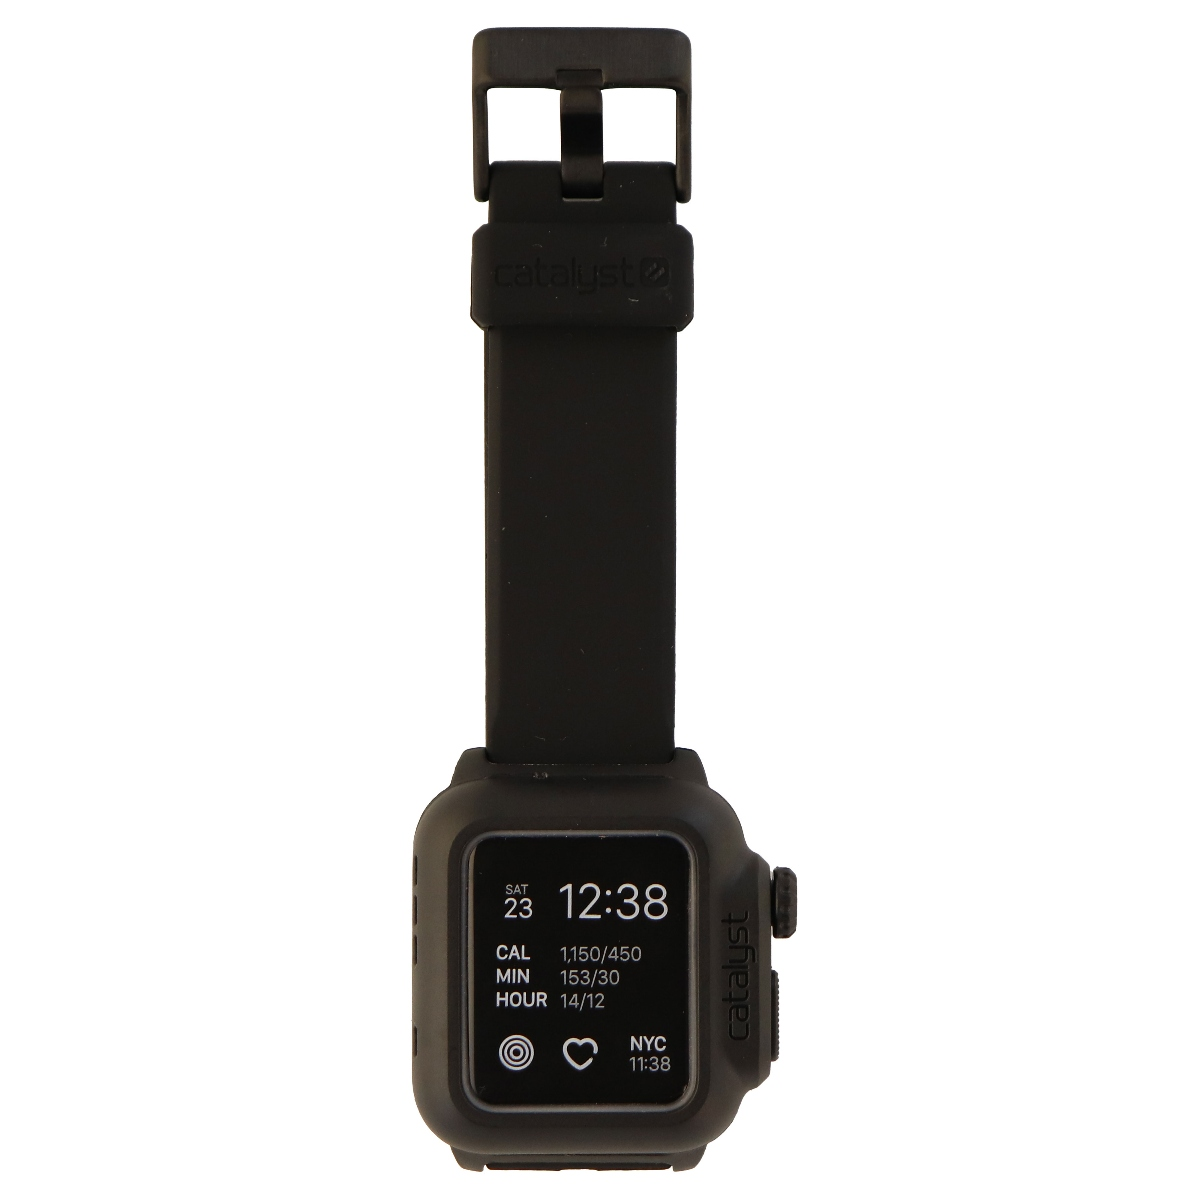 on sale 99b9c 3a5f5 Catalyst Case for Apple Watch 38mm Series 2 - WaterProof - Stealth Black